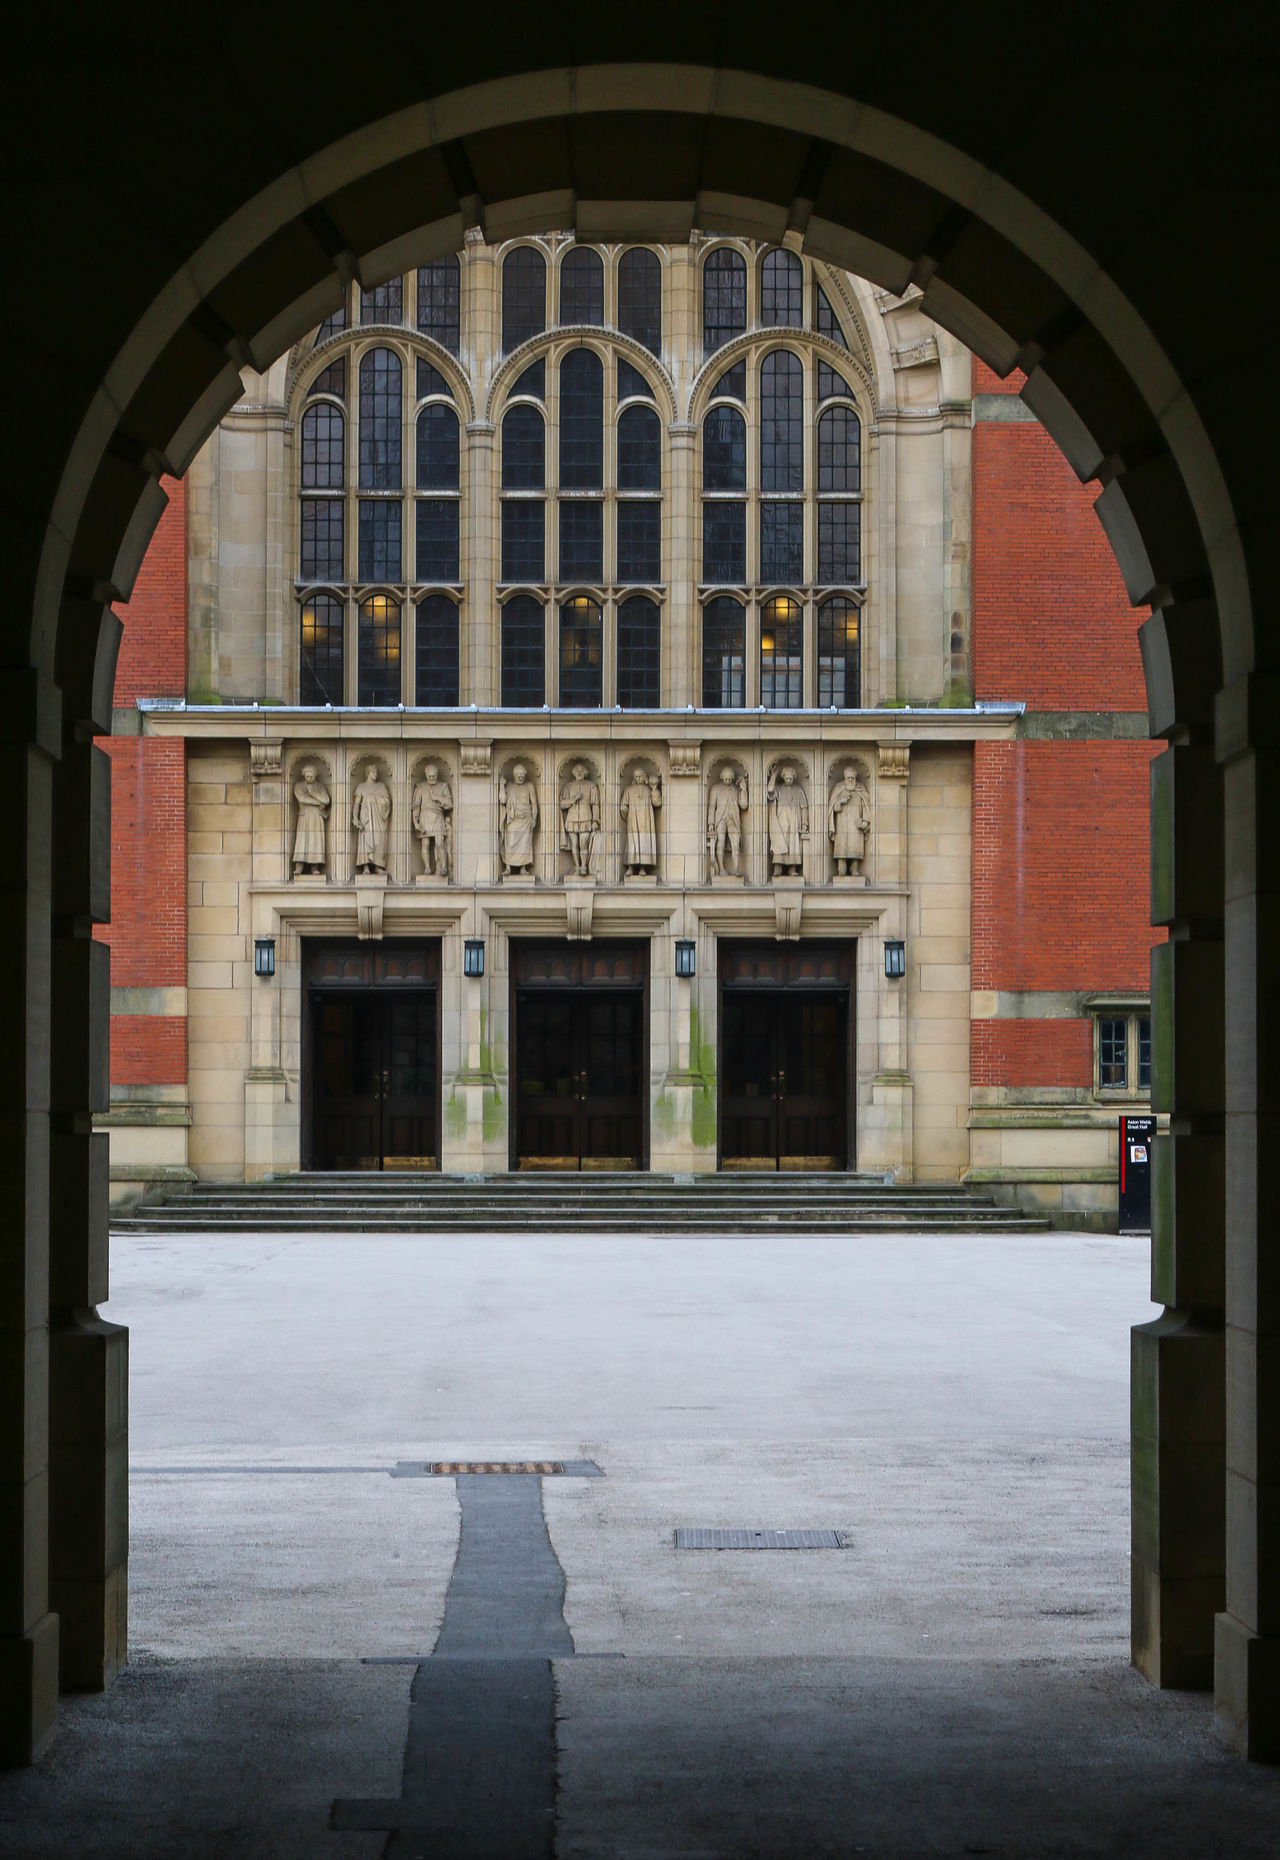 Architecture Architecture Birmingham University  Building Building Exterior Built Structure Exterior Façade Frame It Frame It! Great Hall Outdoors Redbrick Traditional Urban Urban Geometry